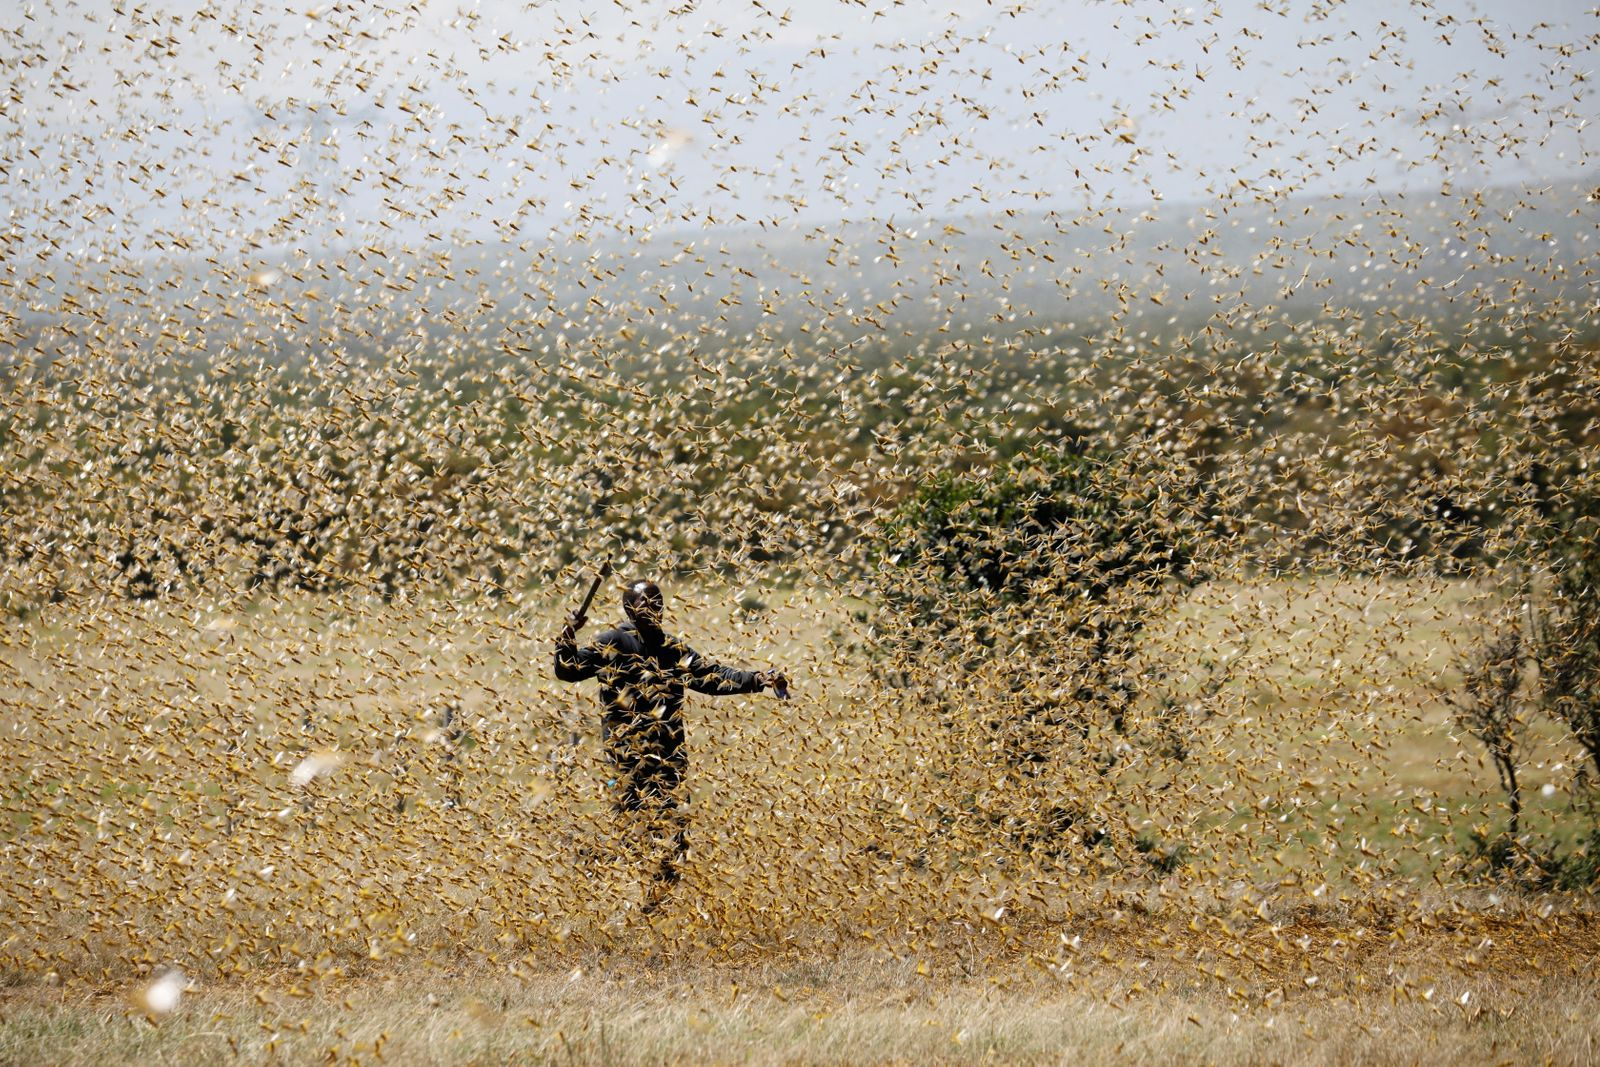 A man attempts to fend-off a swarm of desert locusts at a ranch near the town on Nanyuki in Laikipia county